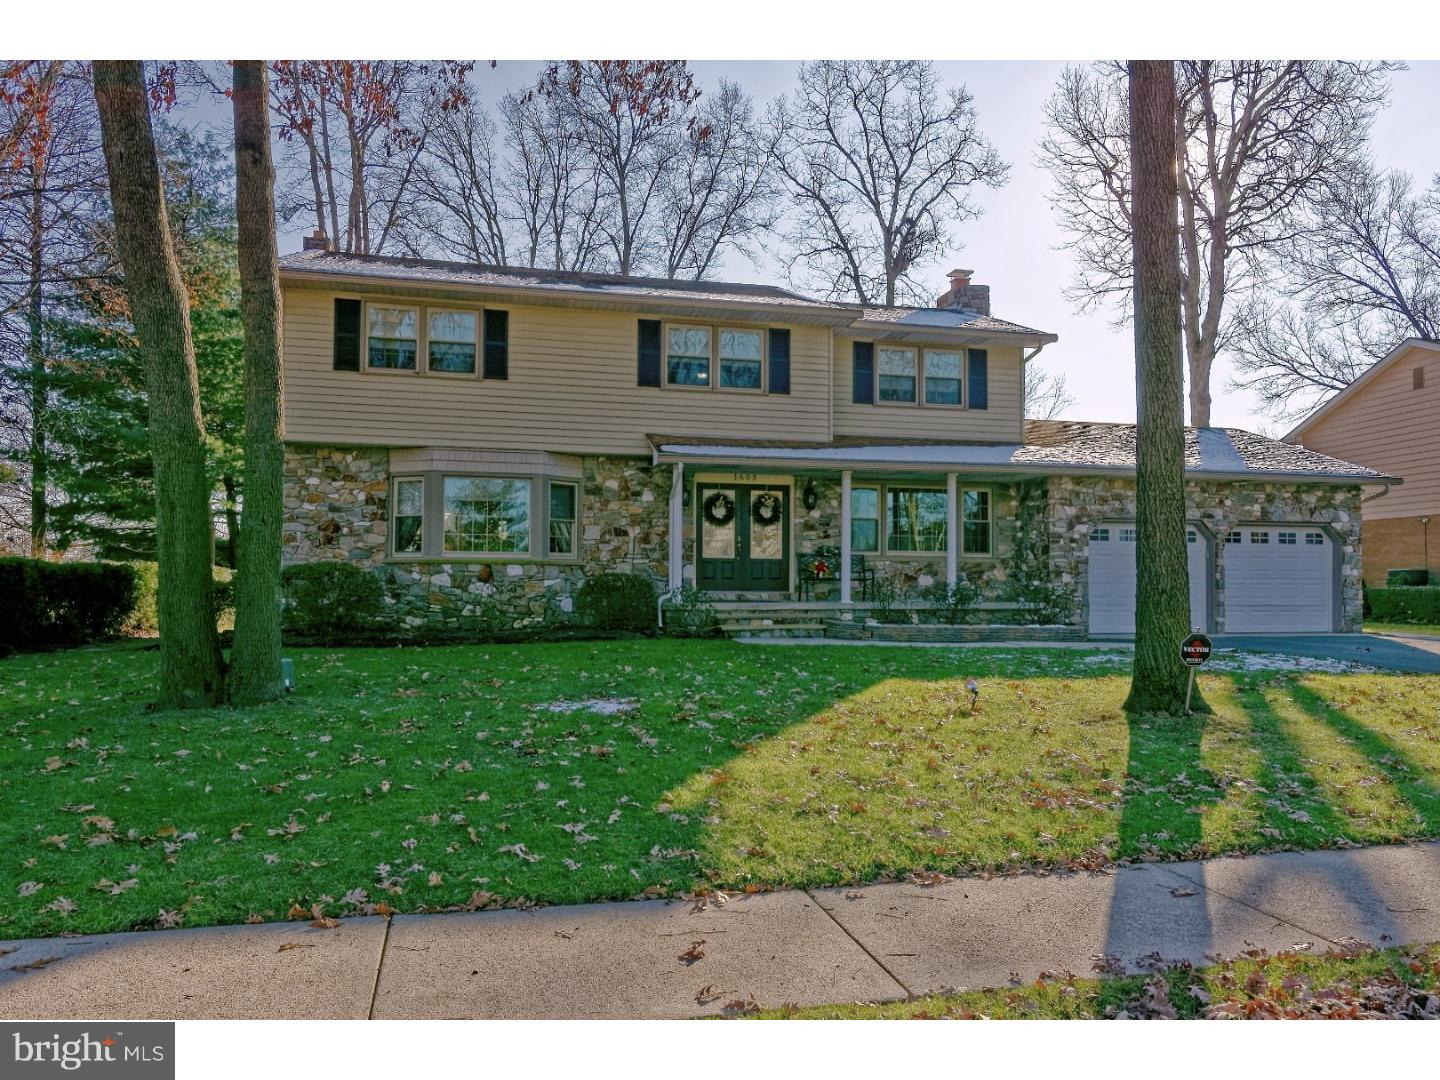 1603 FAIRMOUNT AVENUE, VINELAND, NJ 08361